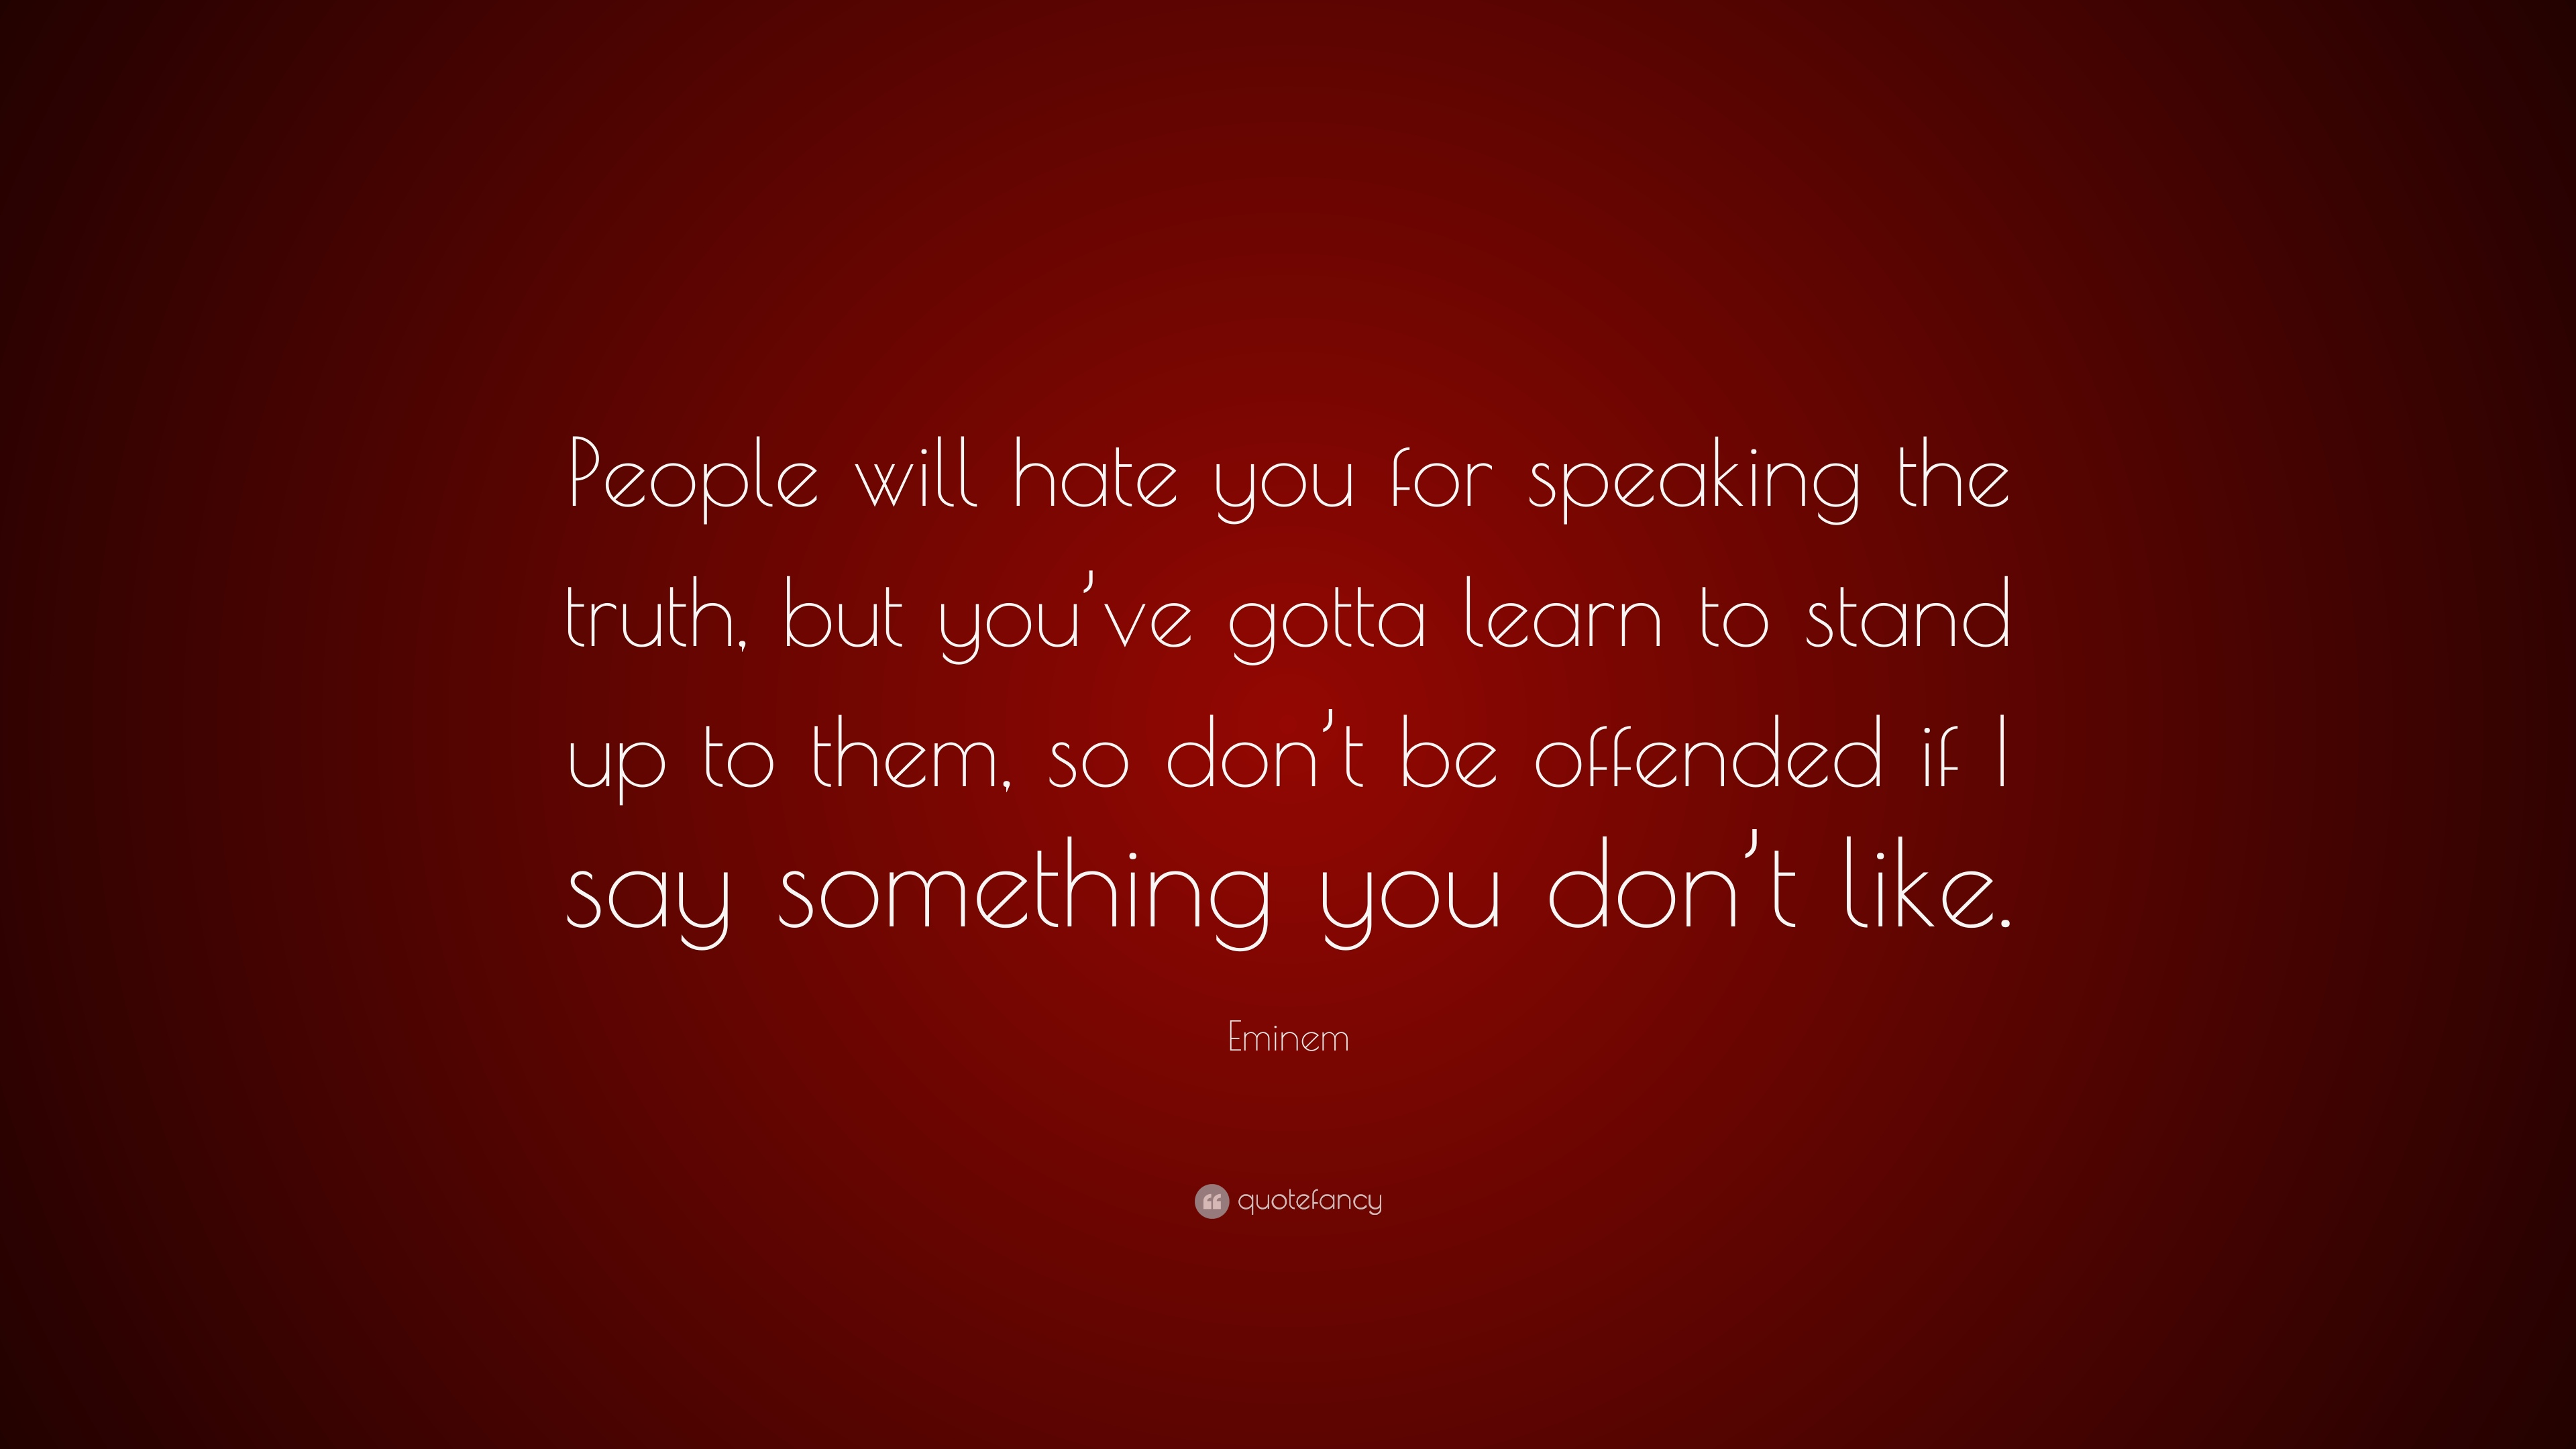 Eminem Quote People Will Hate You For Speaking The Truth But You